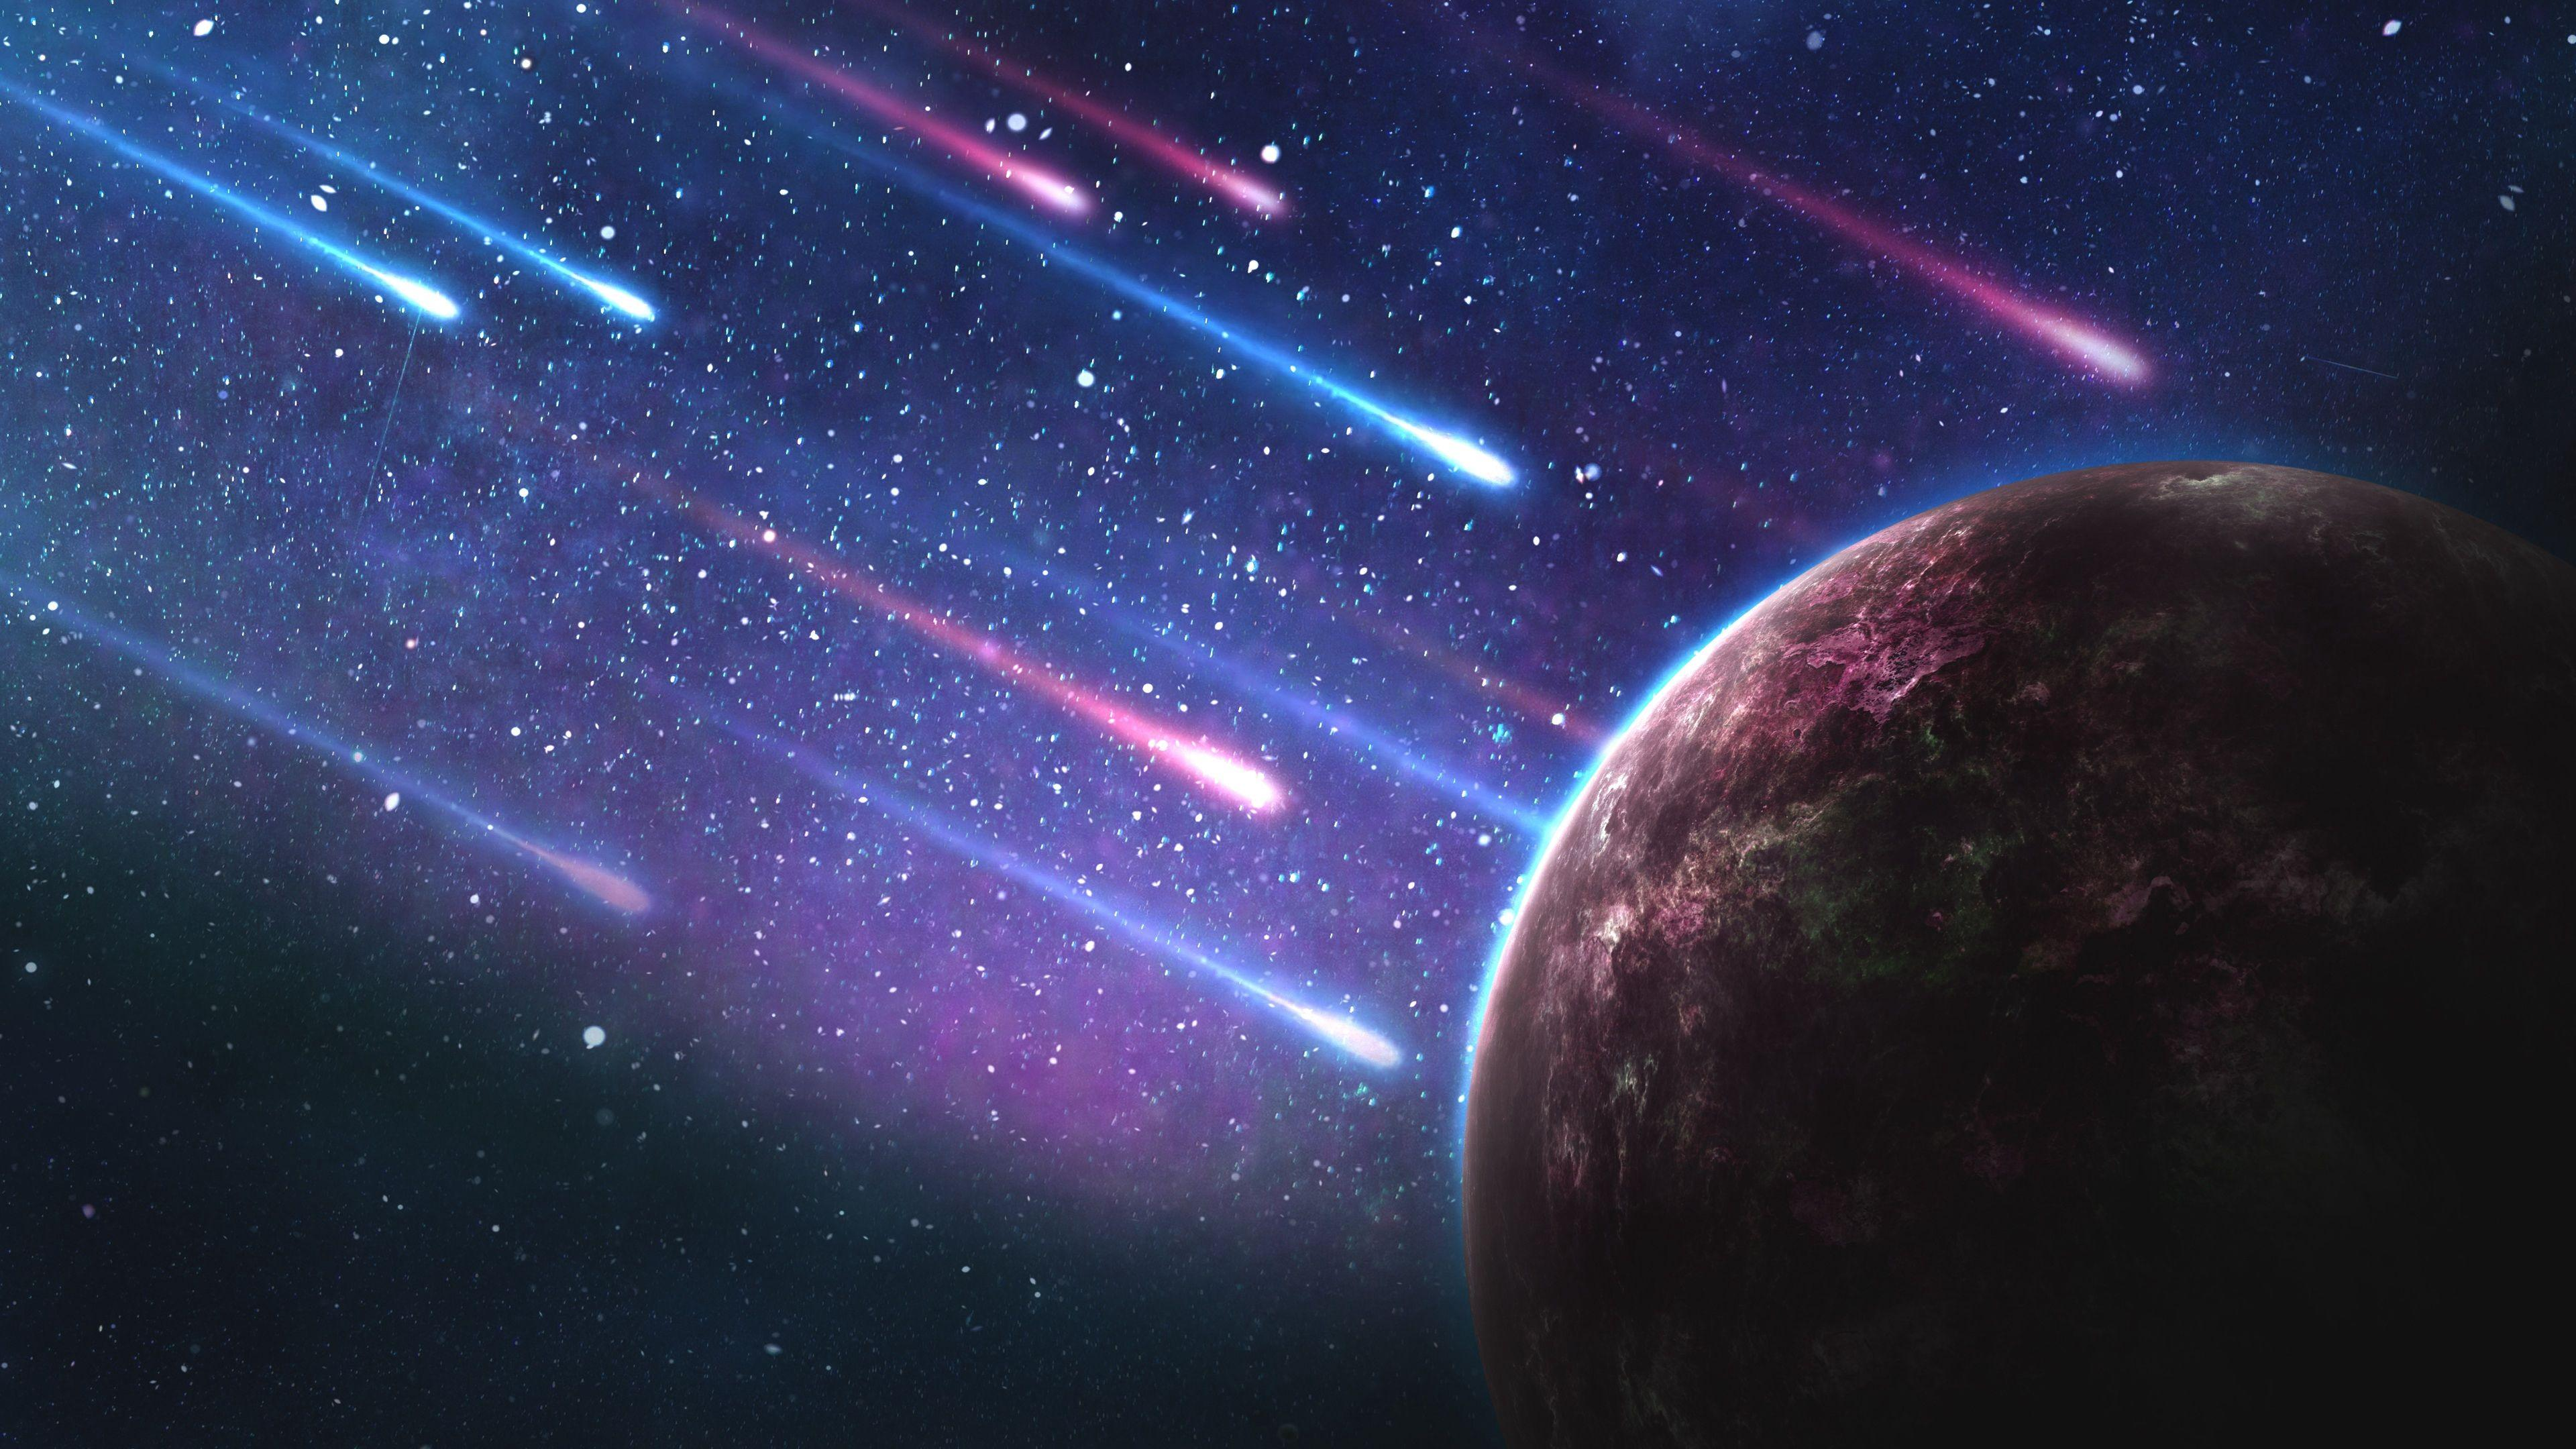 Download wallpapers 3840x2160 planet, meteorites, space, galaxy hd